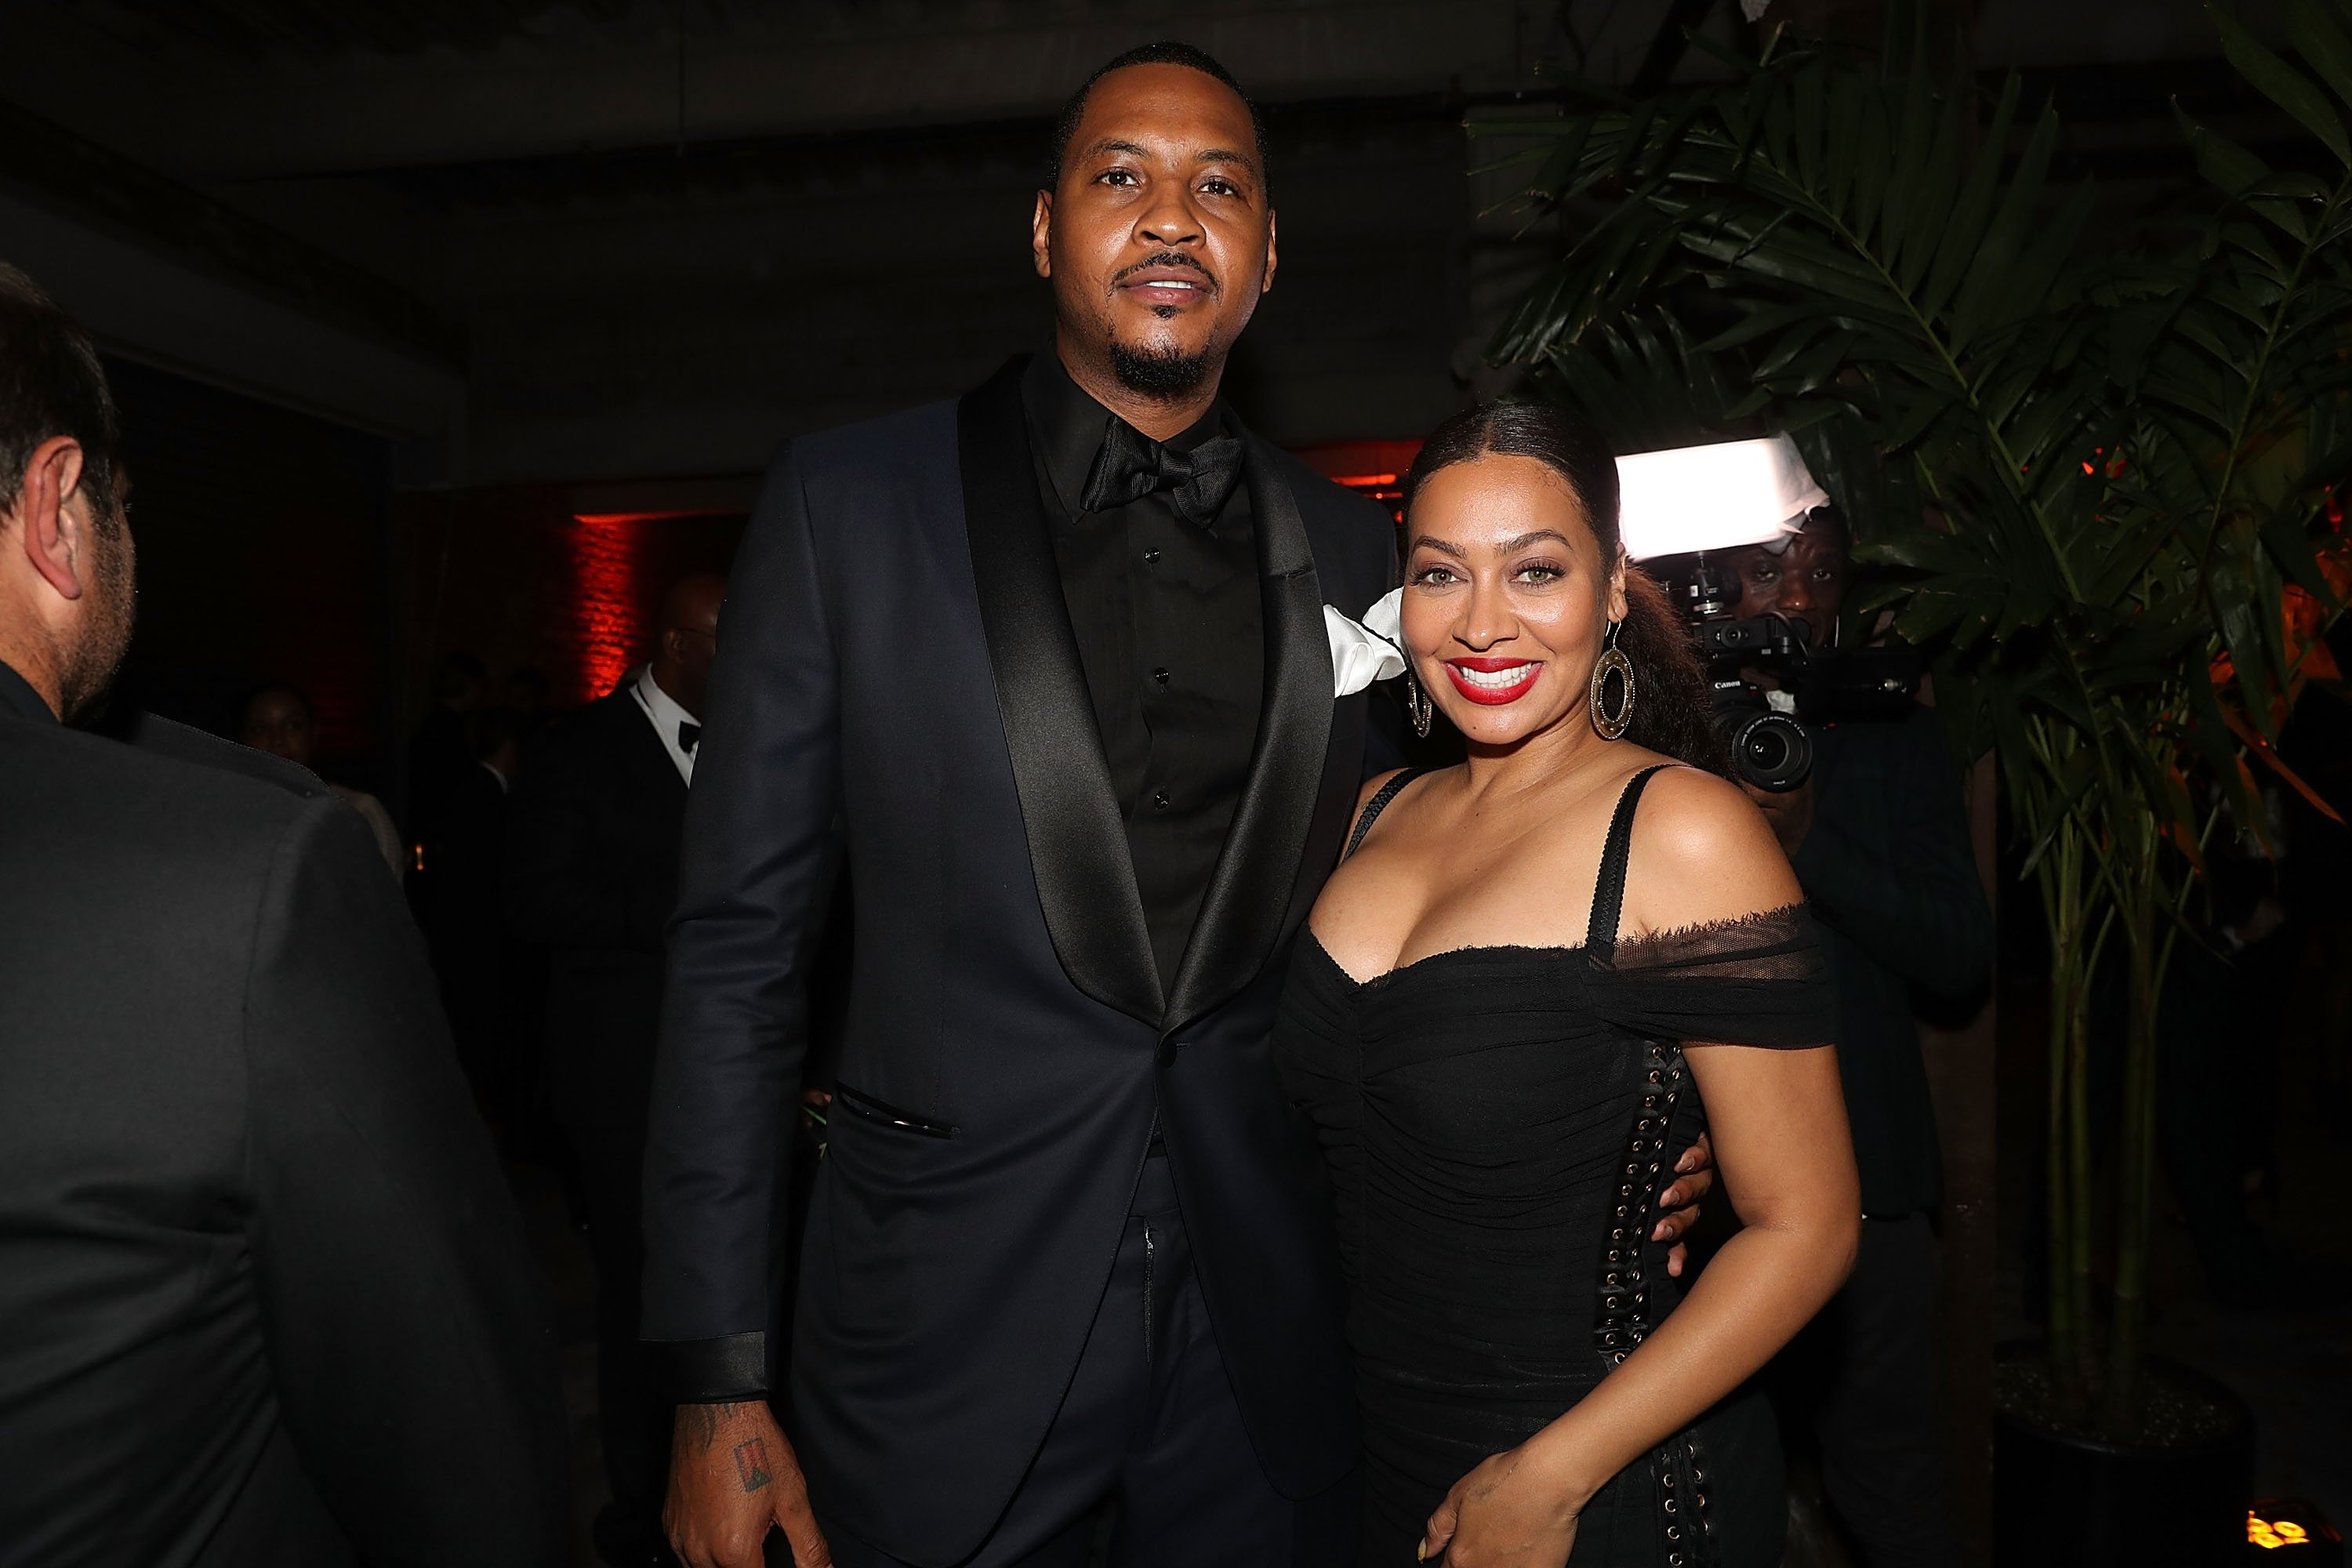 Carmelo Anthony and Lala Anthony attends Swizz Beatz Birthday Celebration on September 12, 2018 in New York City. | Photo: GettyImages/Global Images of Ukraine